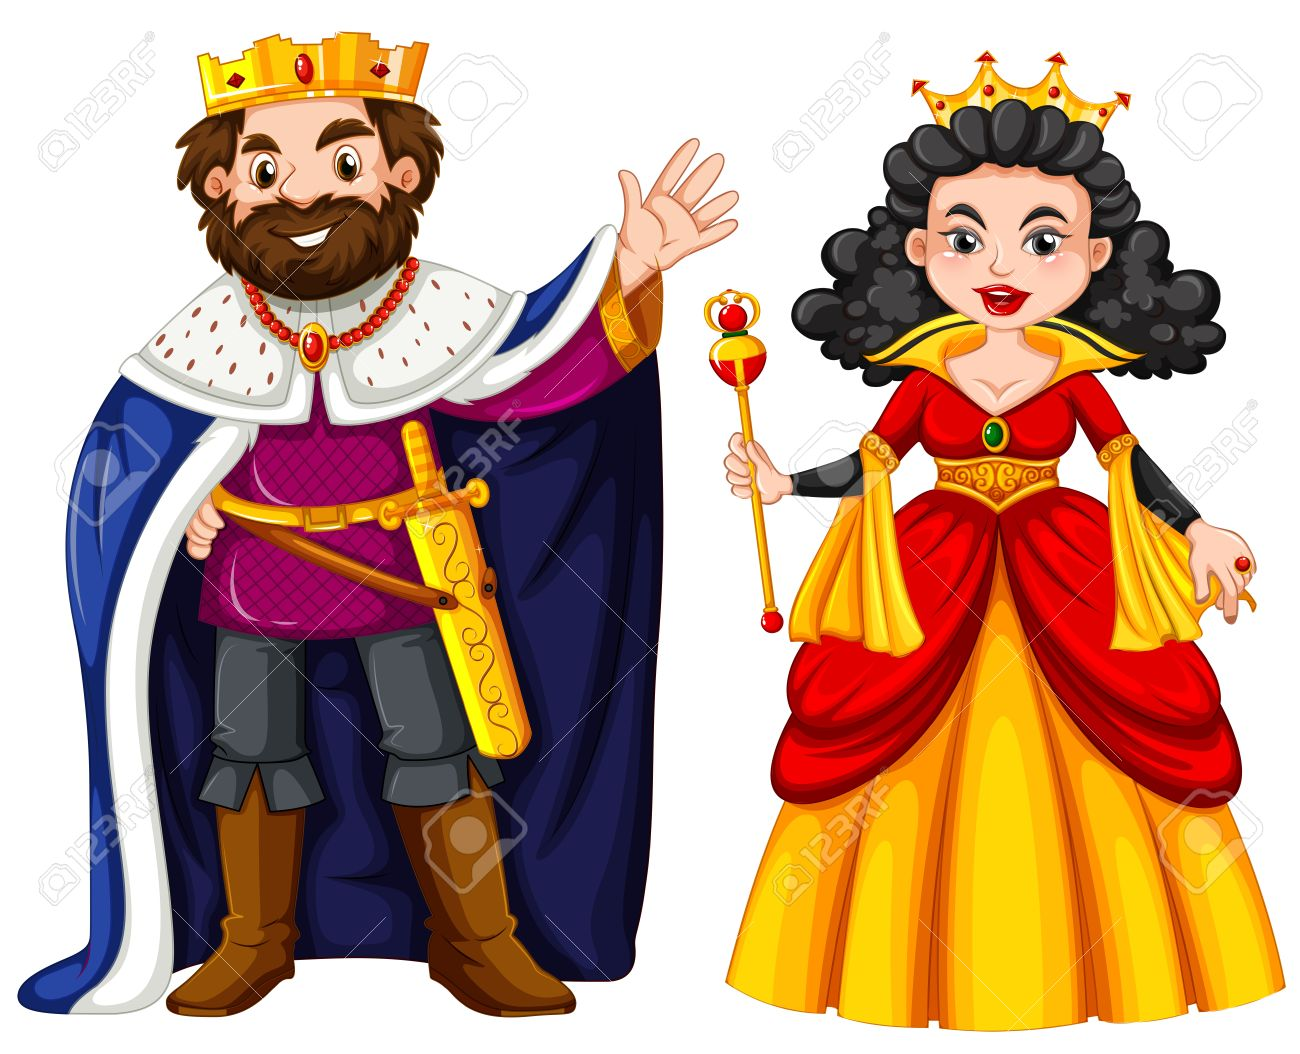 king and queen with happy face illustration royalty free cliparts rh 123rf com king and queen clipart free king and queen crowns clipart